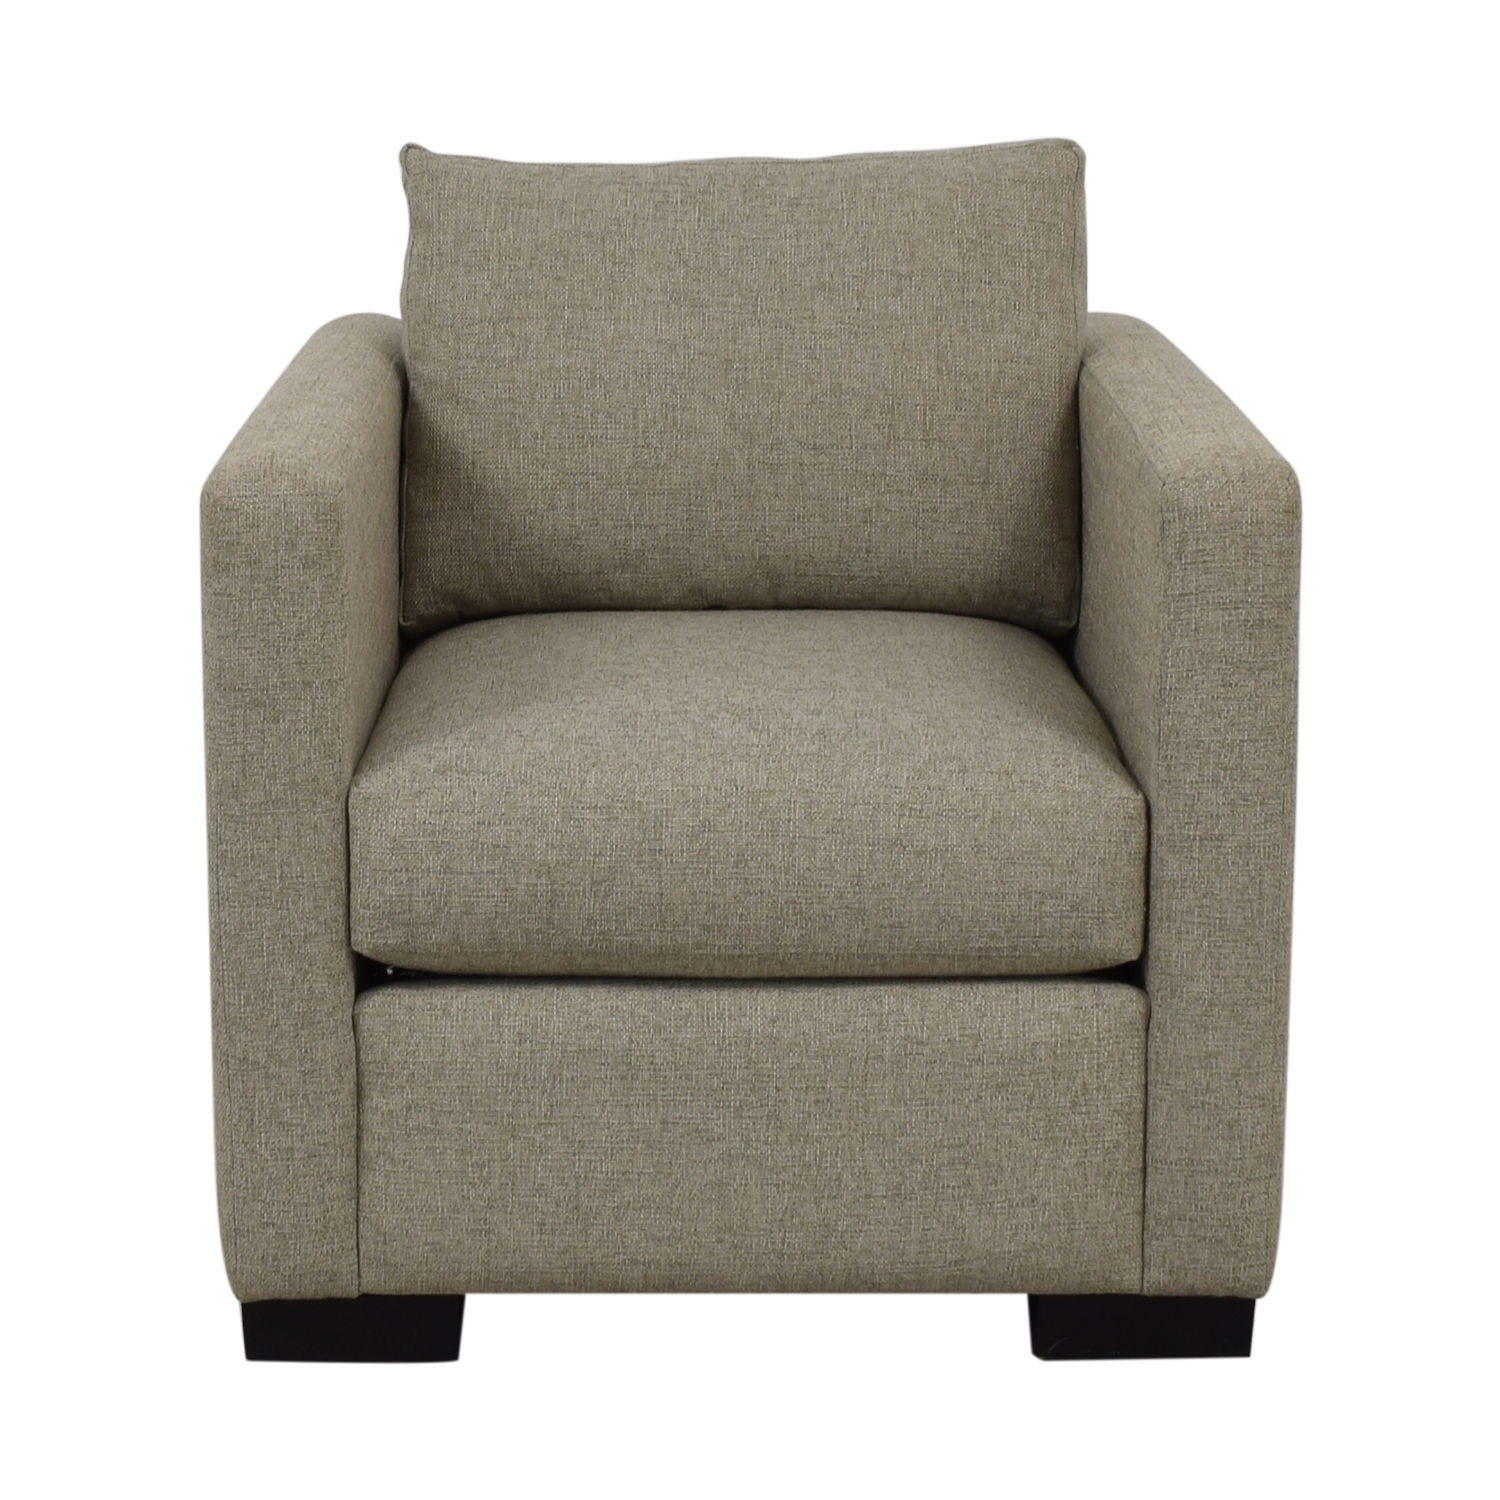 Contemporary Beige Accent Chair sale